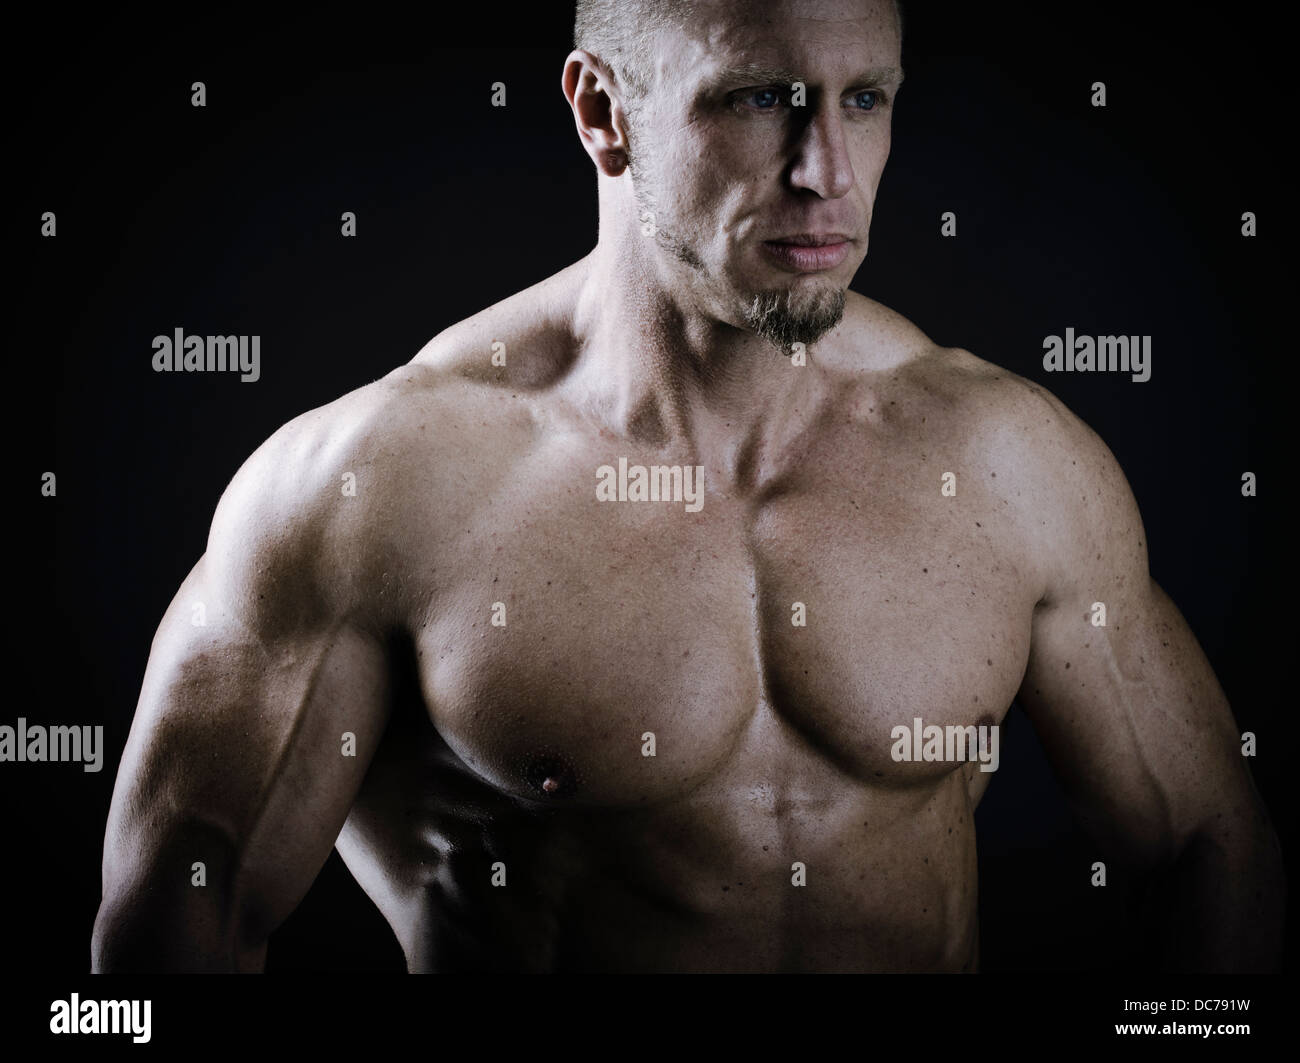 Male bodybuilder Photo Stock